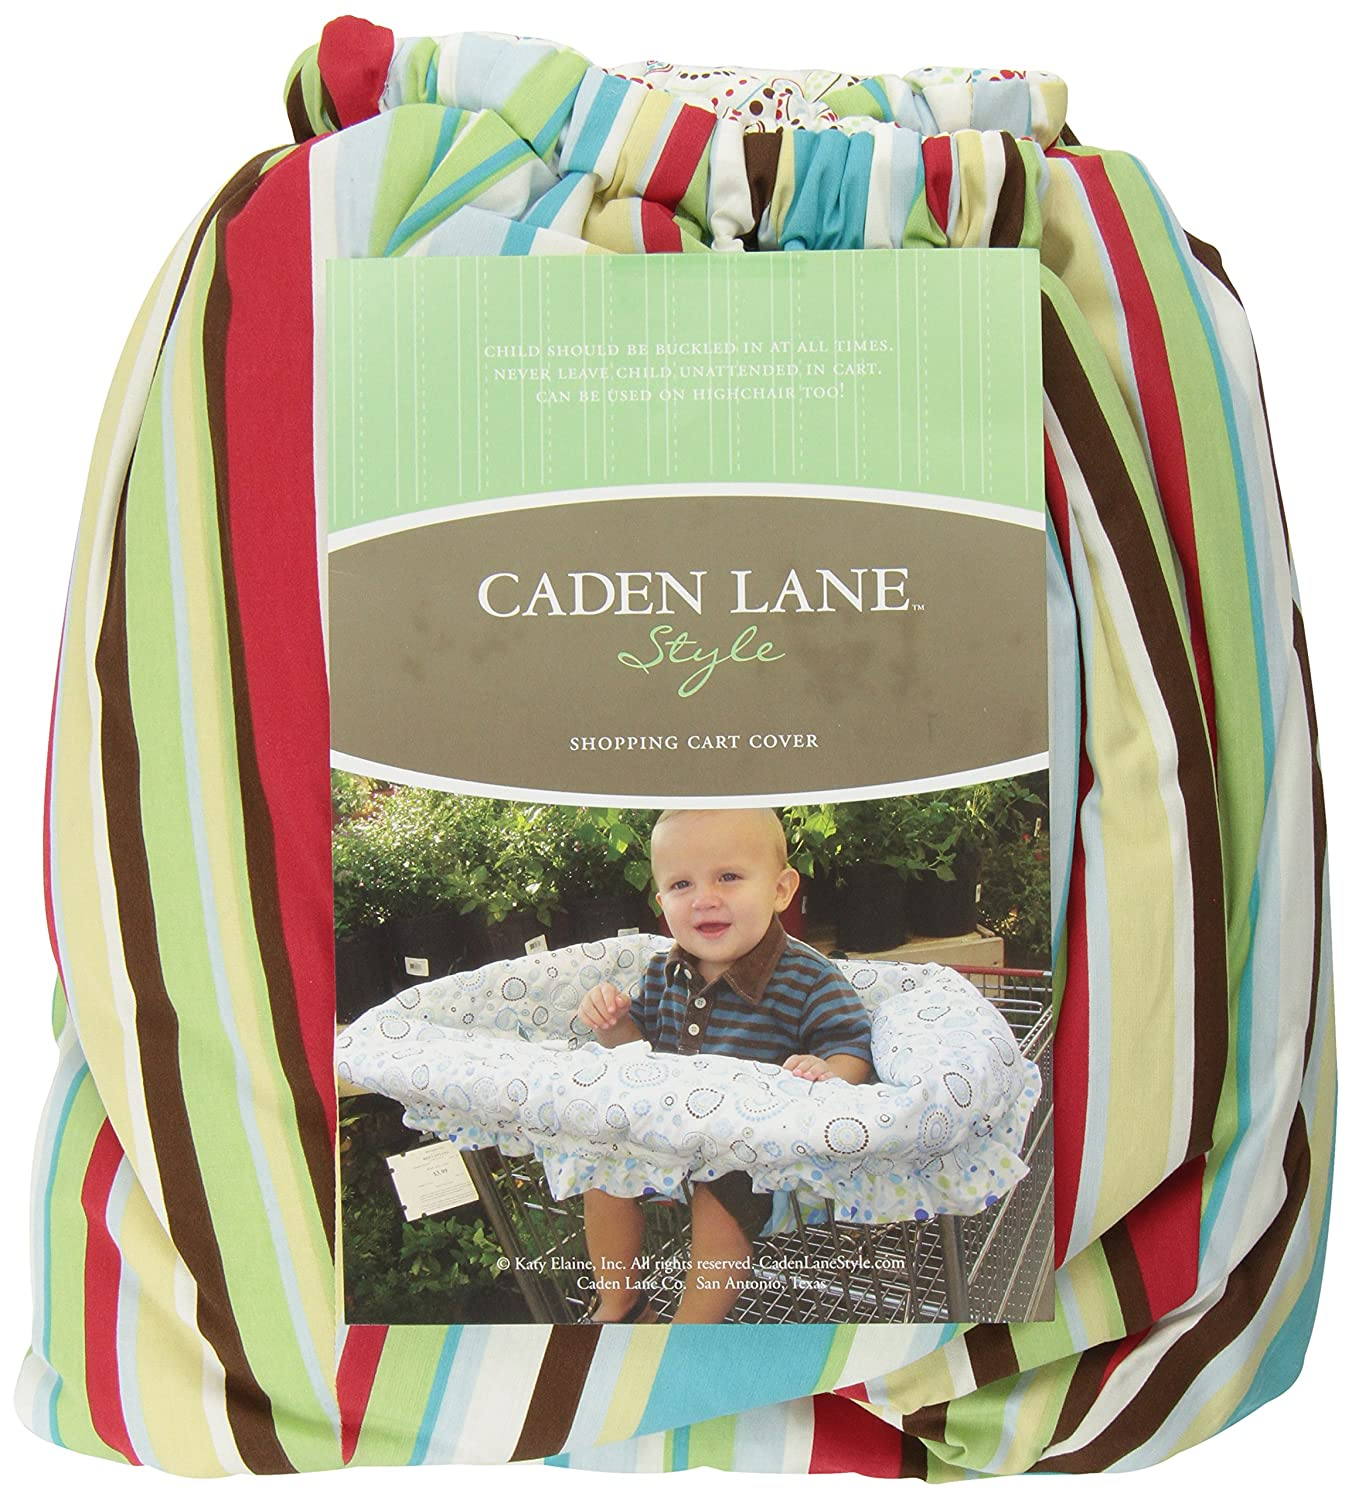 Caden Lane Circle Dot Shopping Cart Cover, Red, One Size 1RCDSCC